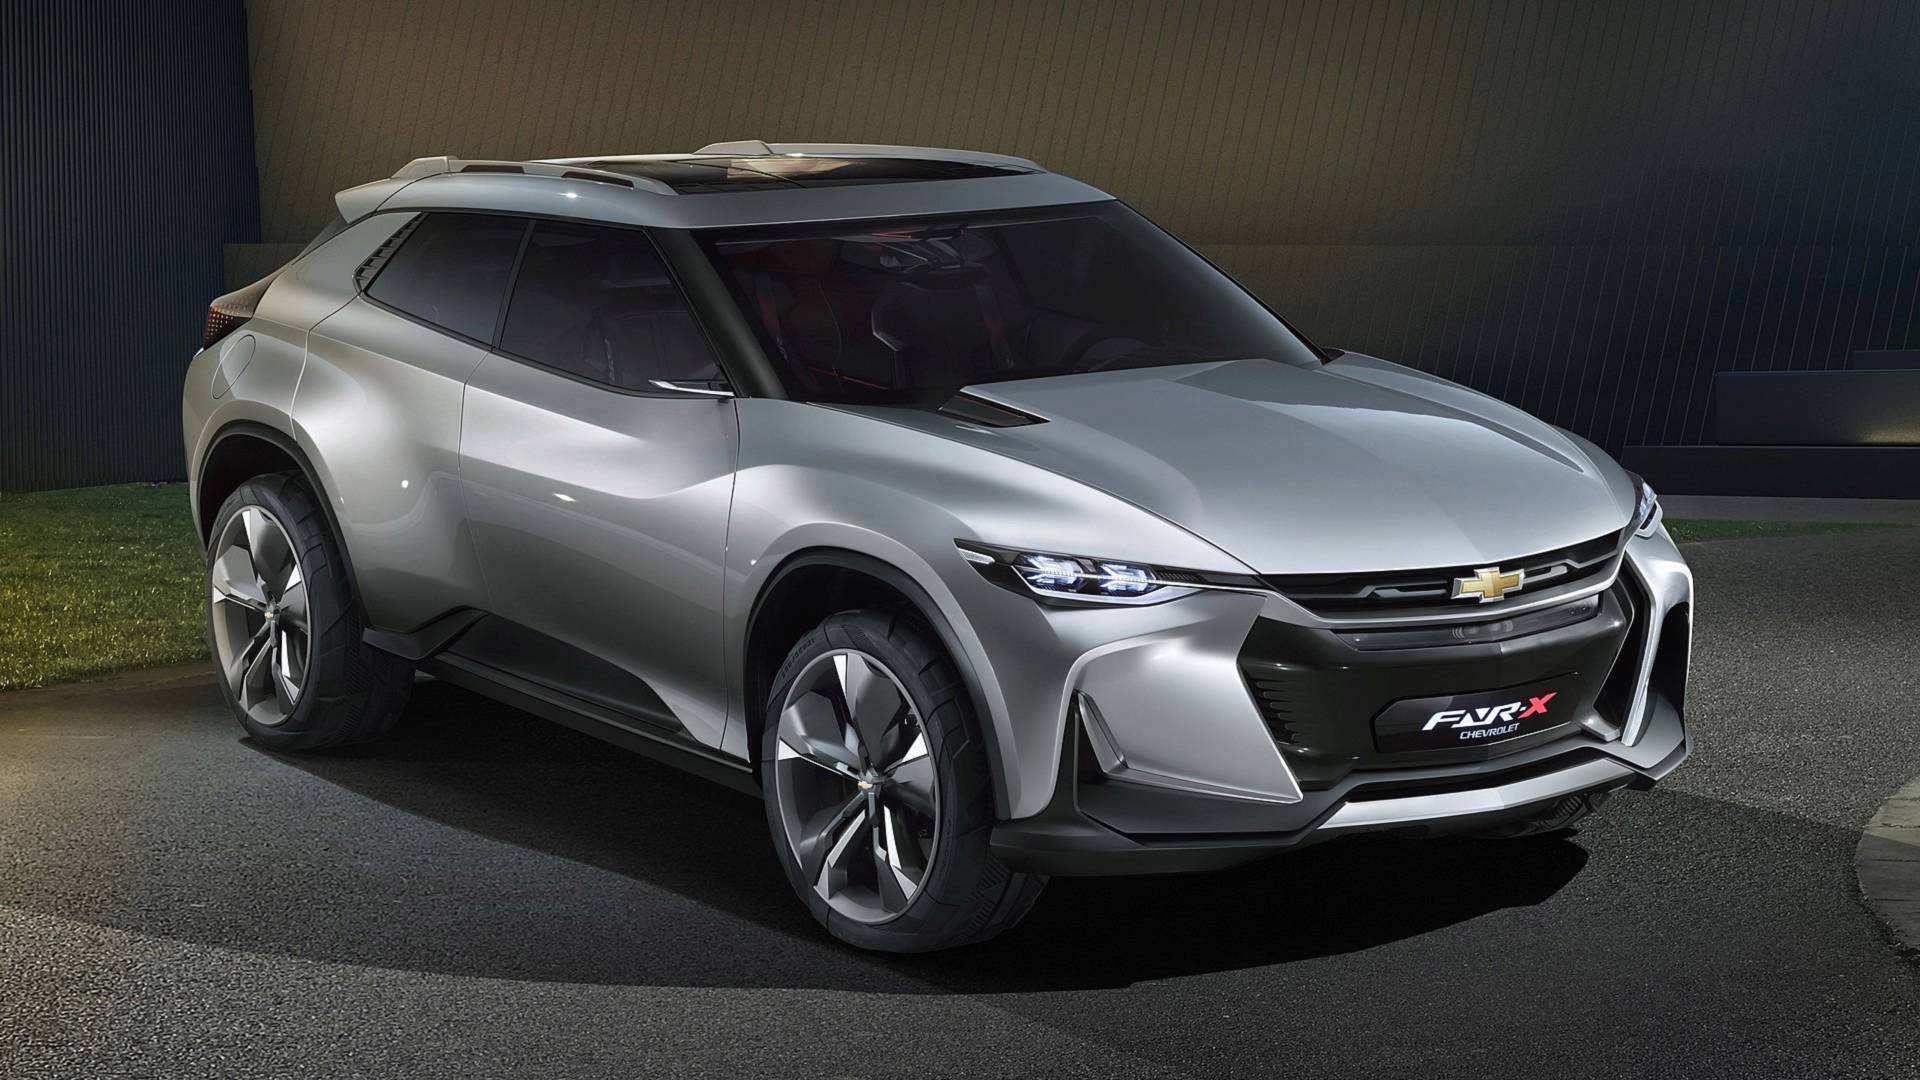 90 All New Chevrolet New Cars 2020 Rumors